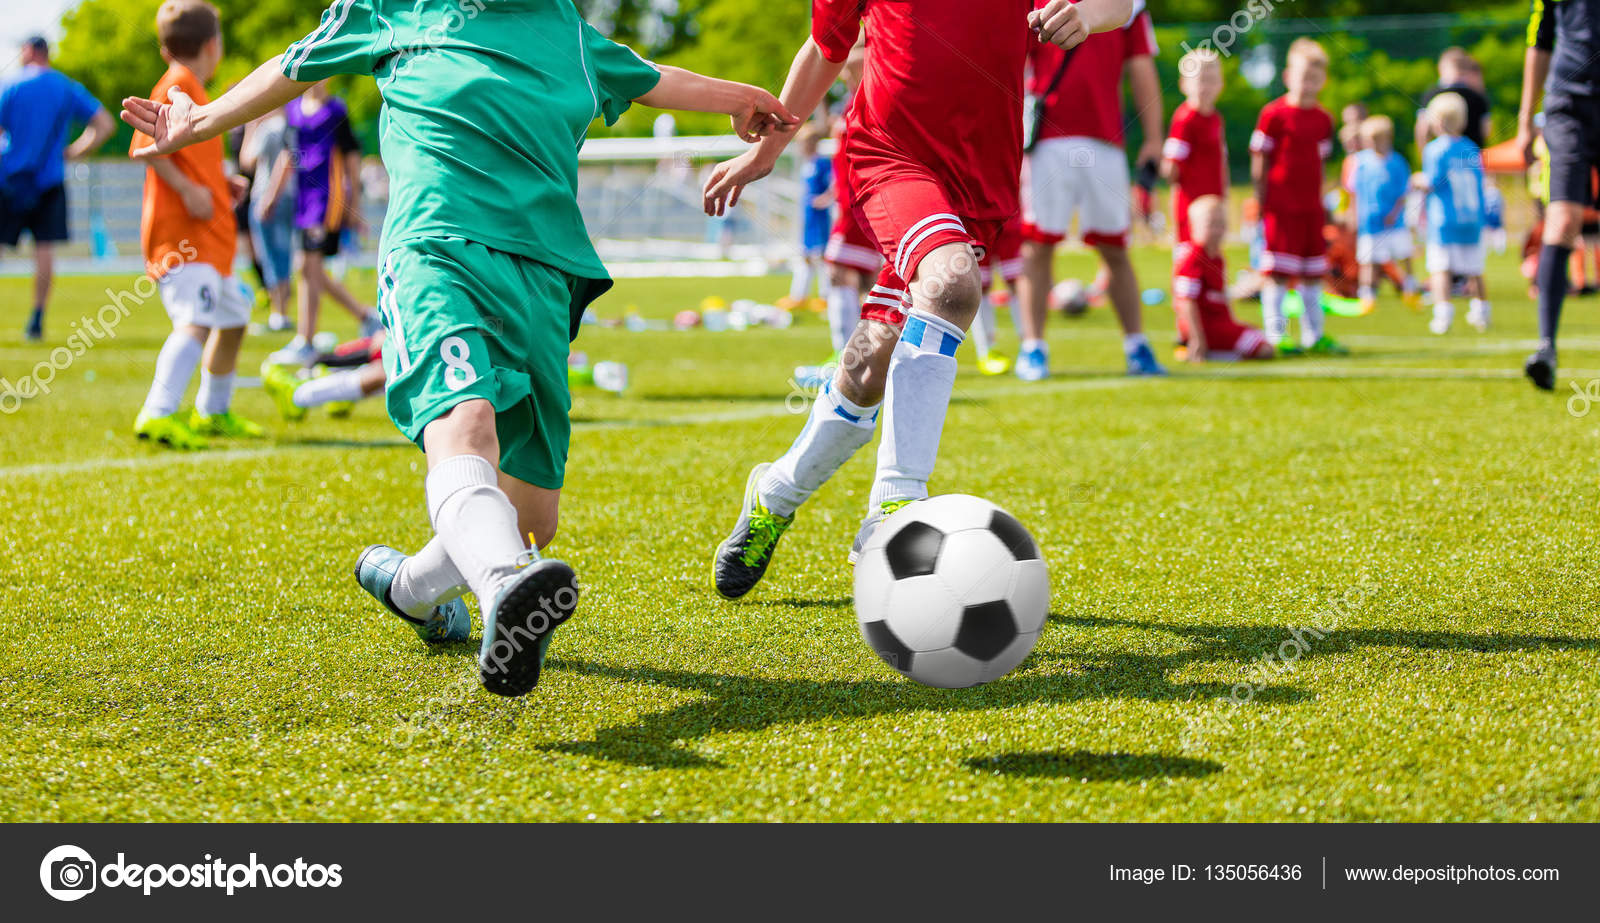 planes kids with Stock Photo Children Playing Football Soccer Game on Rich The Kid 2016 Interview together with Toy Fair 2016 Auldey Toys additionally fort Blue Skies Fabric Conditioner 1 5l 282378 as well Stock Illustration Happy Birthday 10 Years Kids as well Stock Illustration Dissolving Solids Solubility Chemistry.